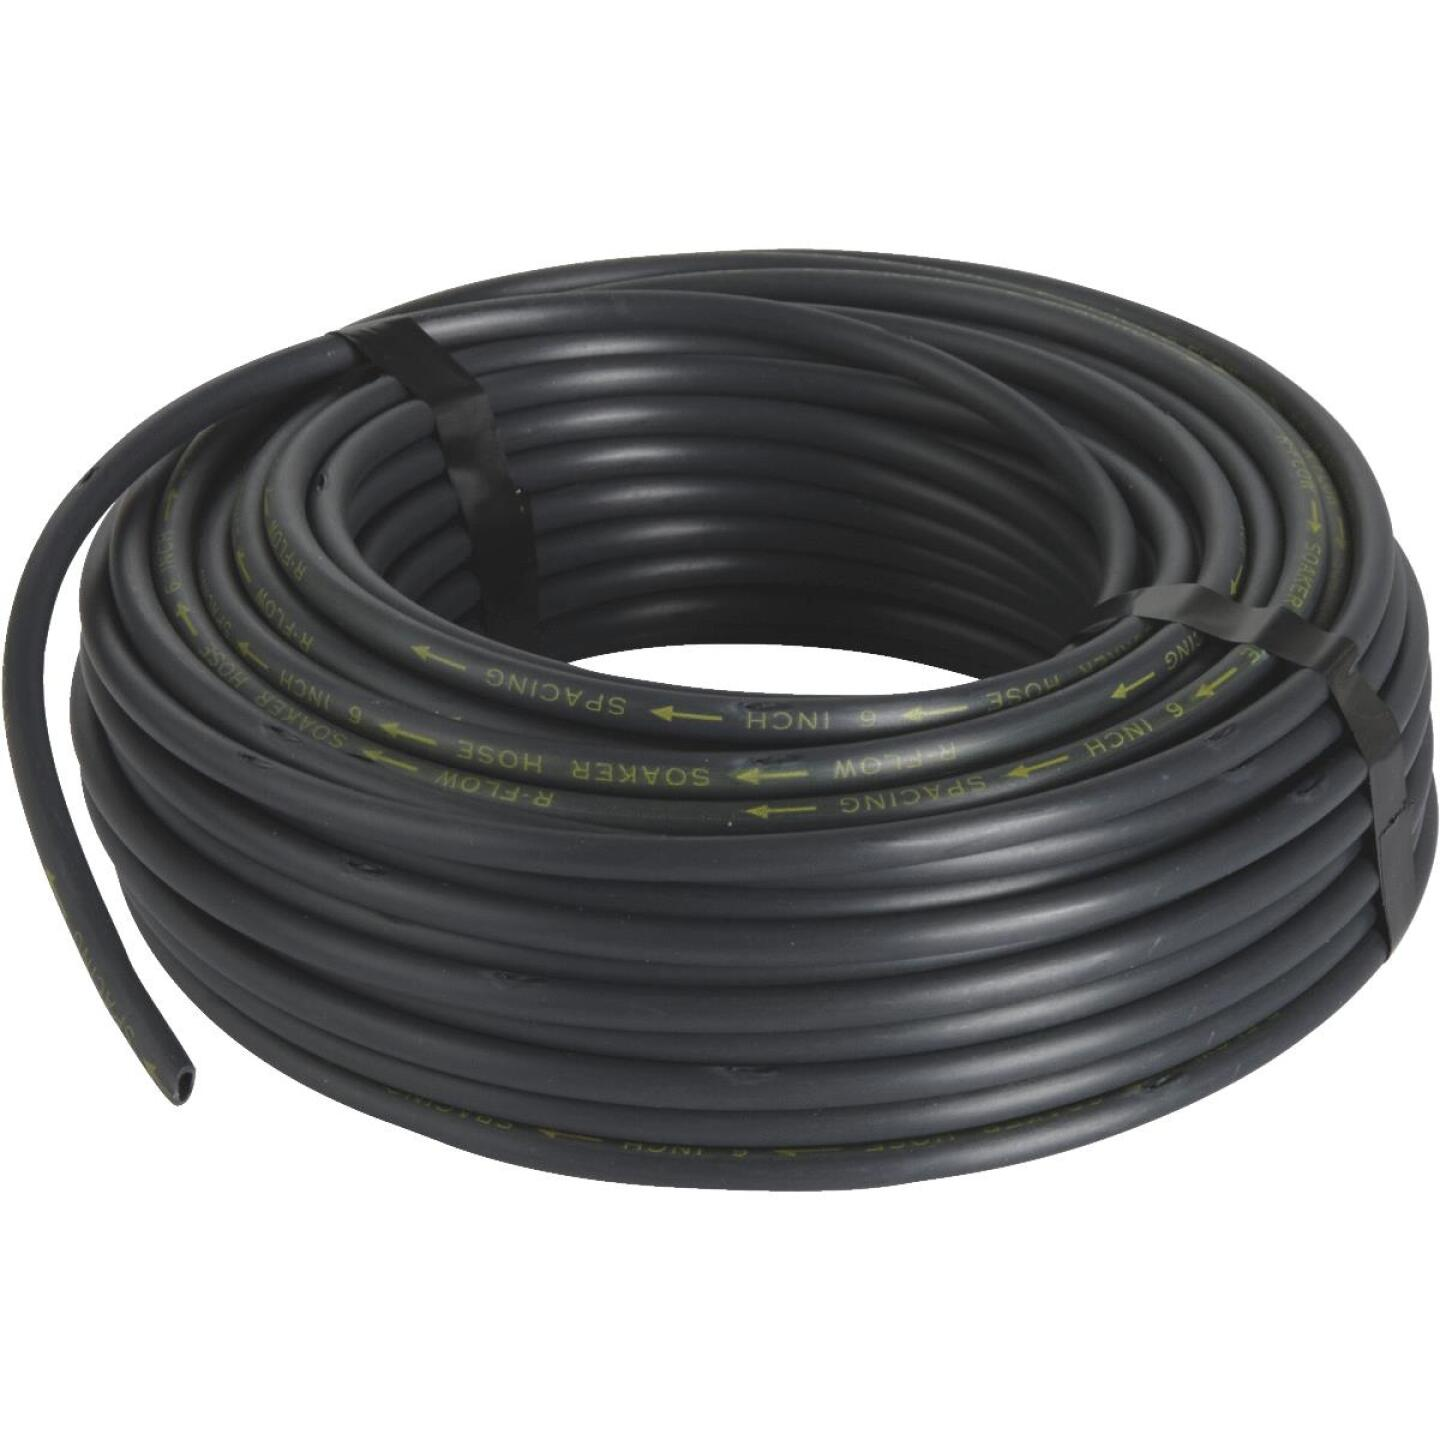 Raindrip 1/4 In. Dia. x 100 Ft. L. Poly Soaker Hose Image 1